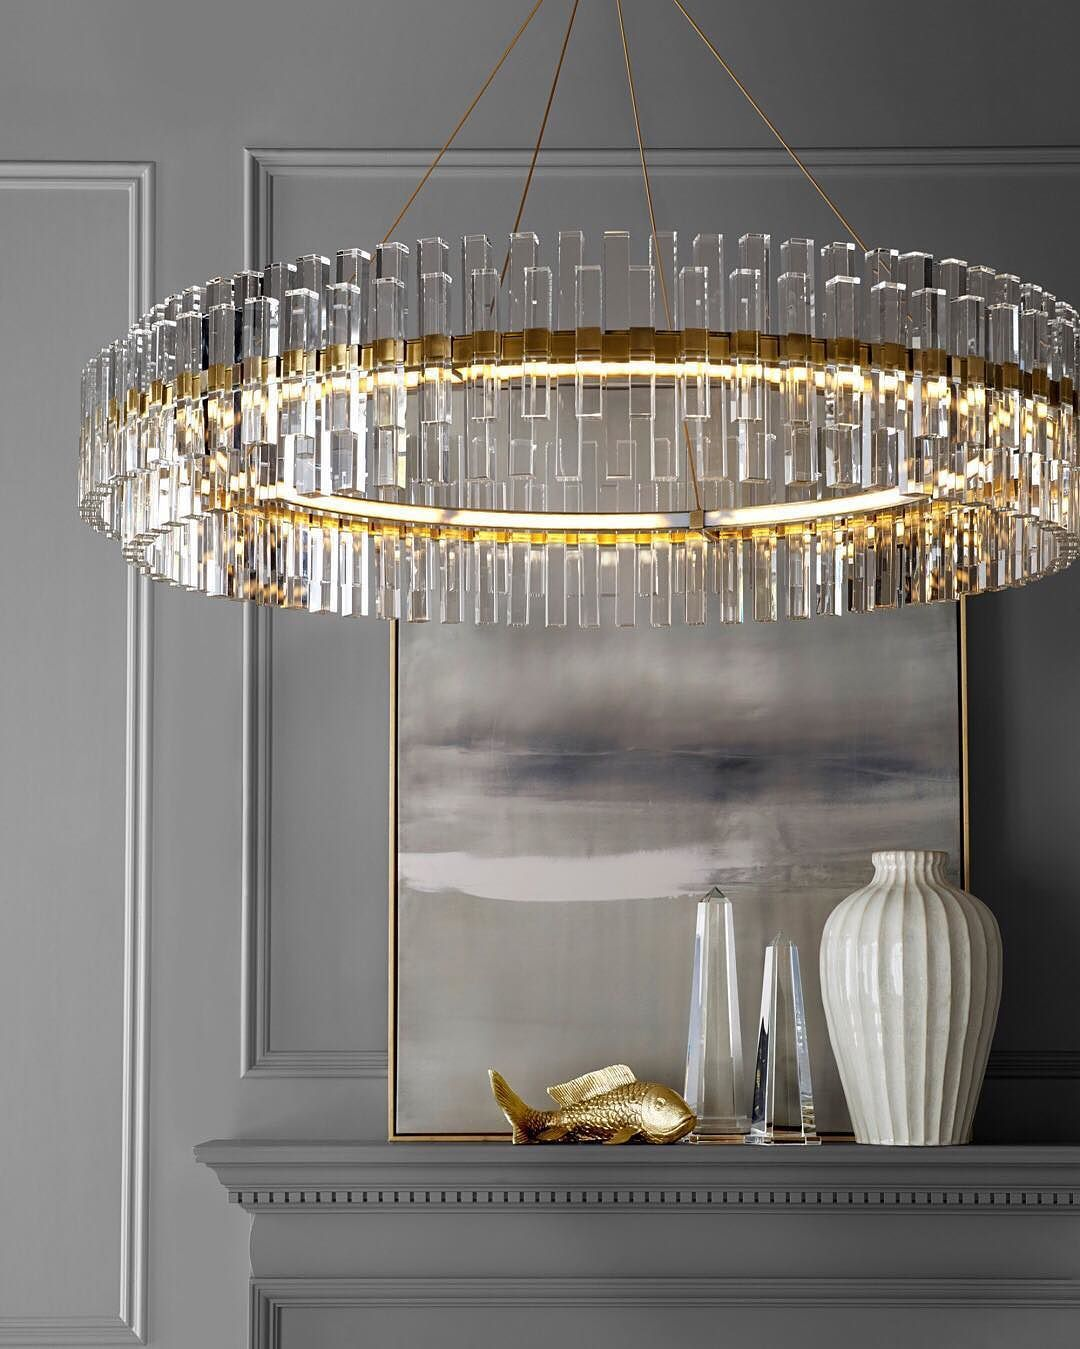 The Phoebe Crystal Chandelier Bids You Sweet Dreams Inspired By Art Deco Designs From